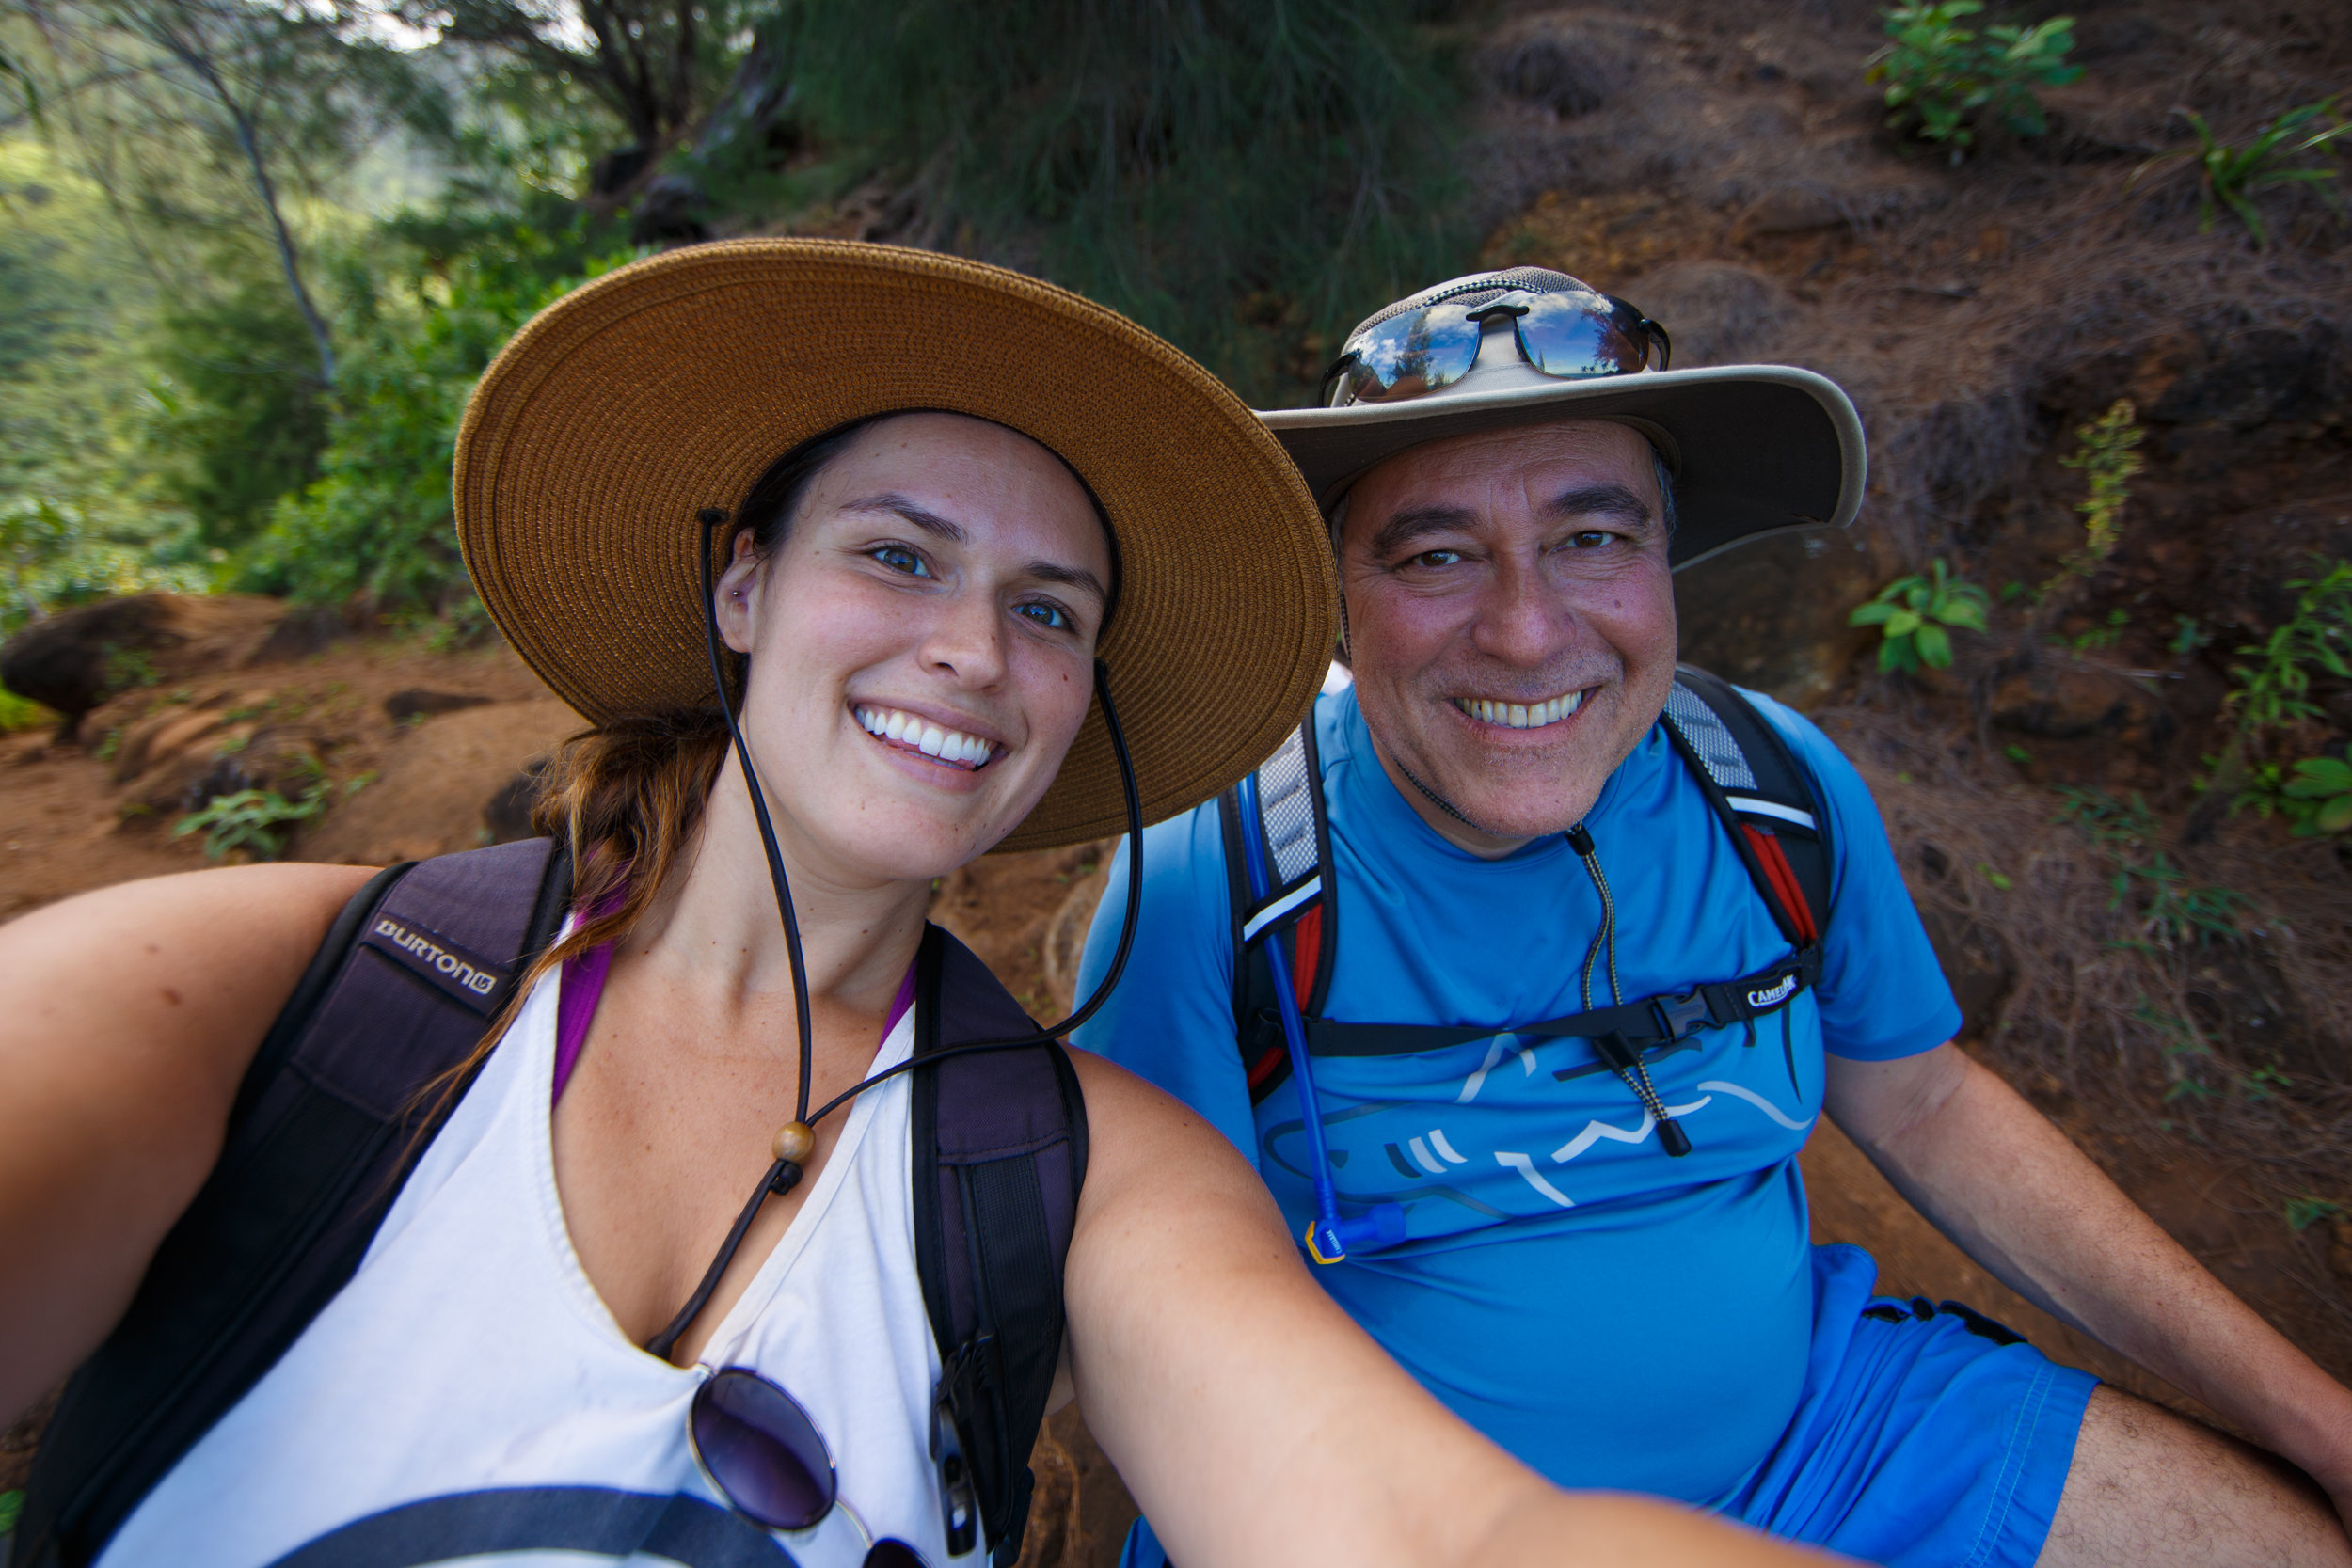 A quick snap of the happy hikers resting on a rock along the trail.